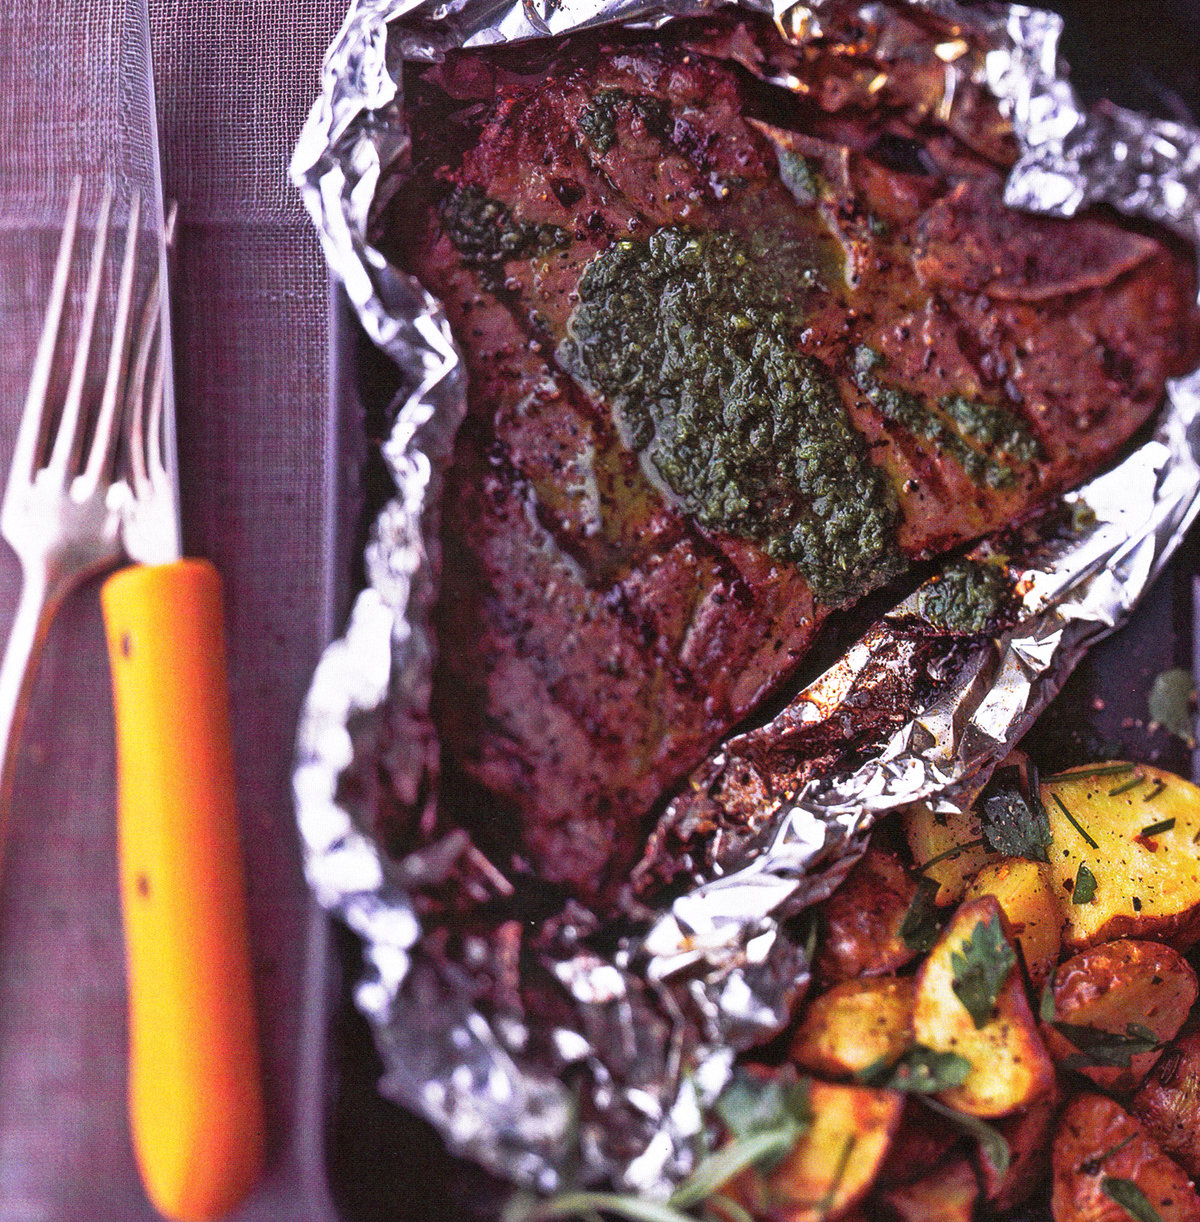 Grilled T-bone Steaks With Parsley And Garlic Sauce